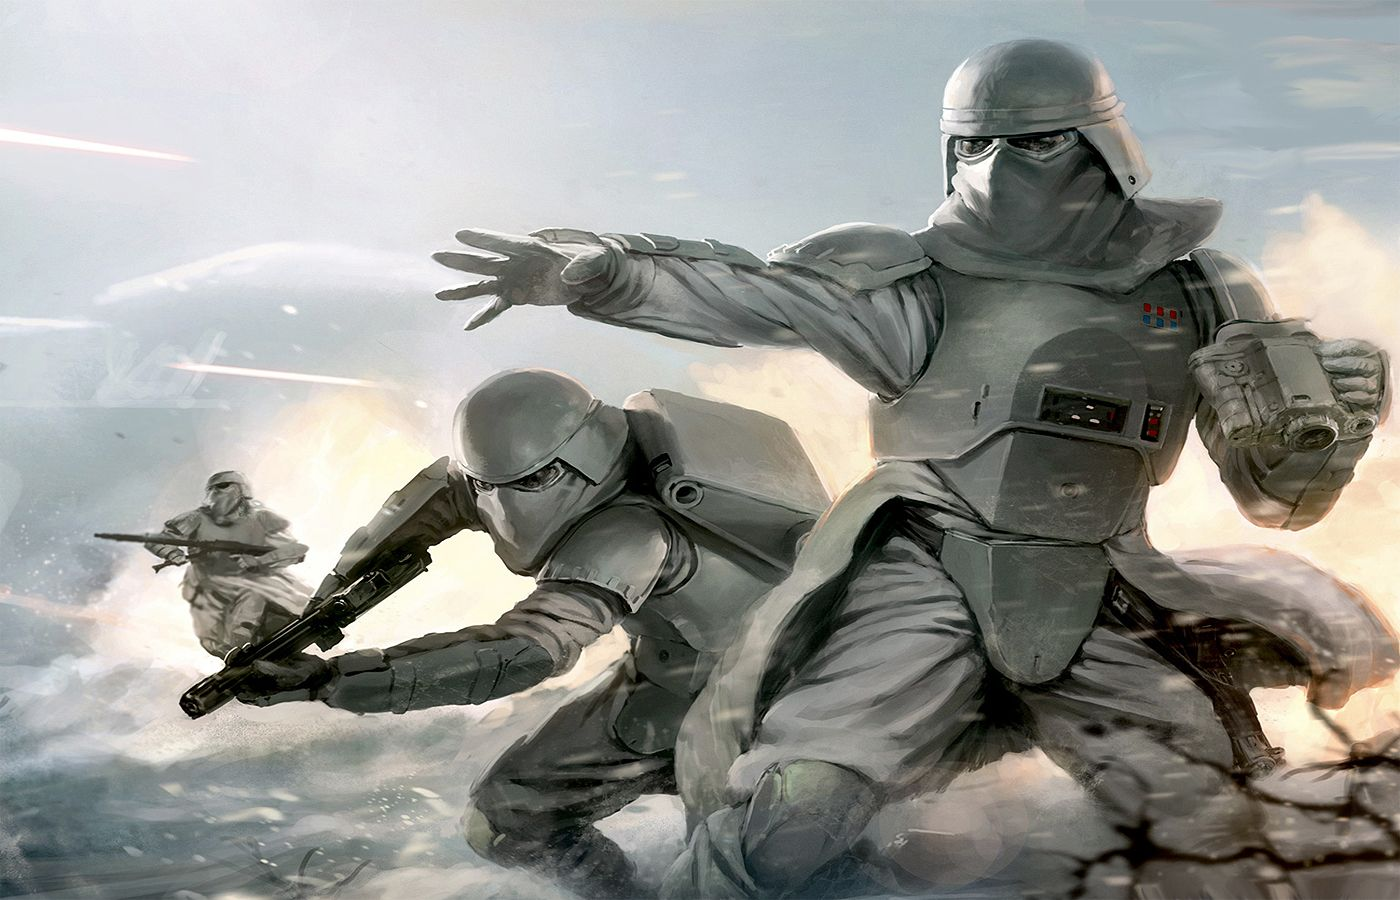 Star Wars Snow Trooper Hd Wallpaper Movies Tv 826238 Star Wars Art Star Wars Fan Art Star Wars Trooper